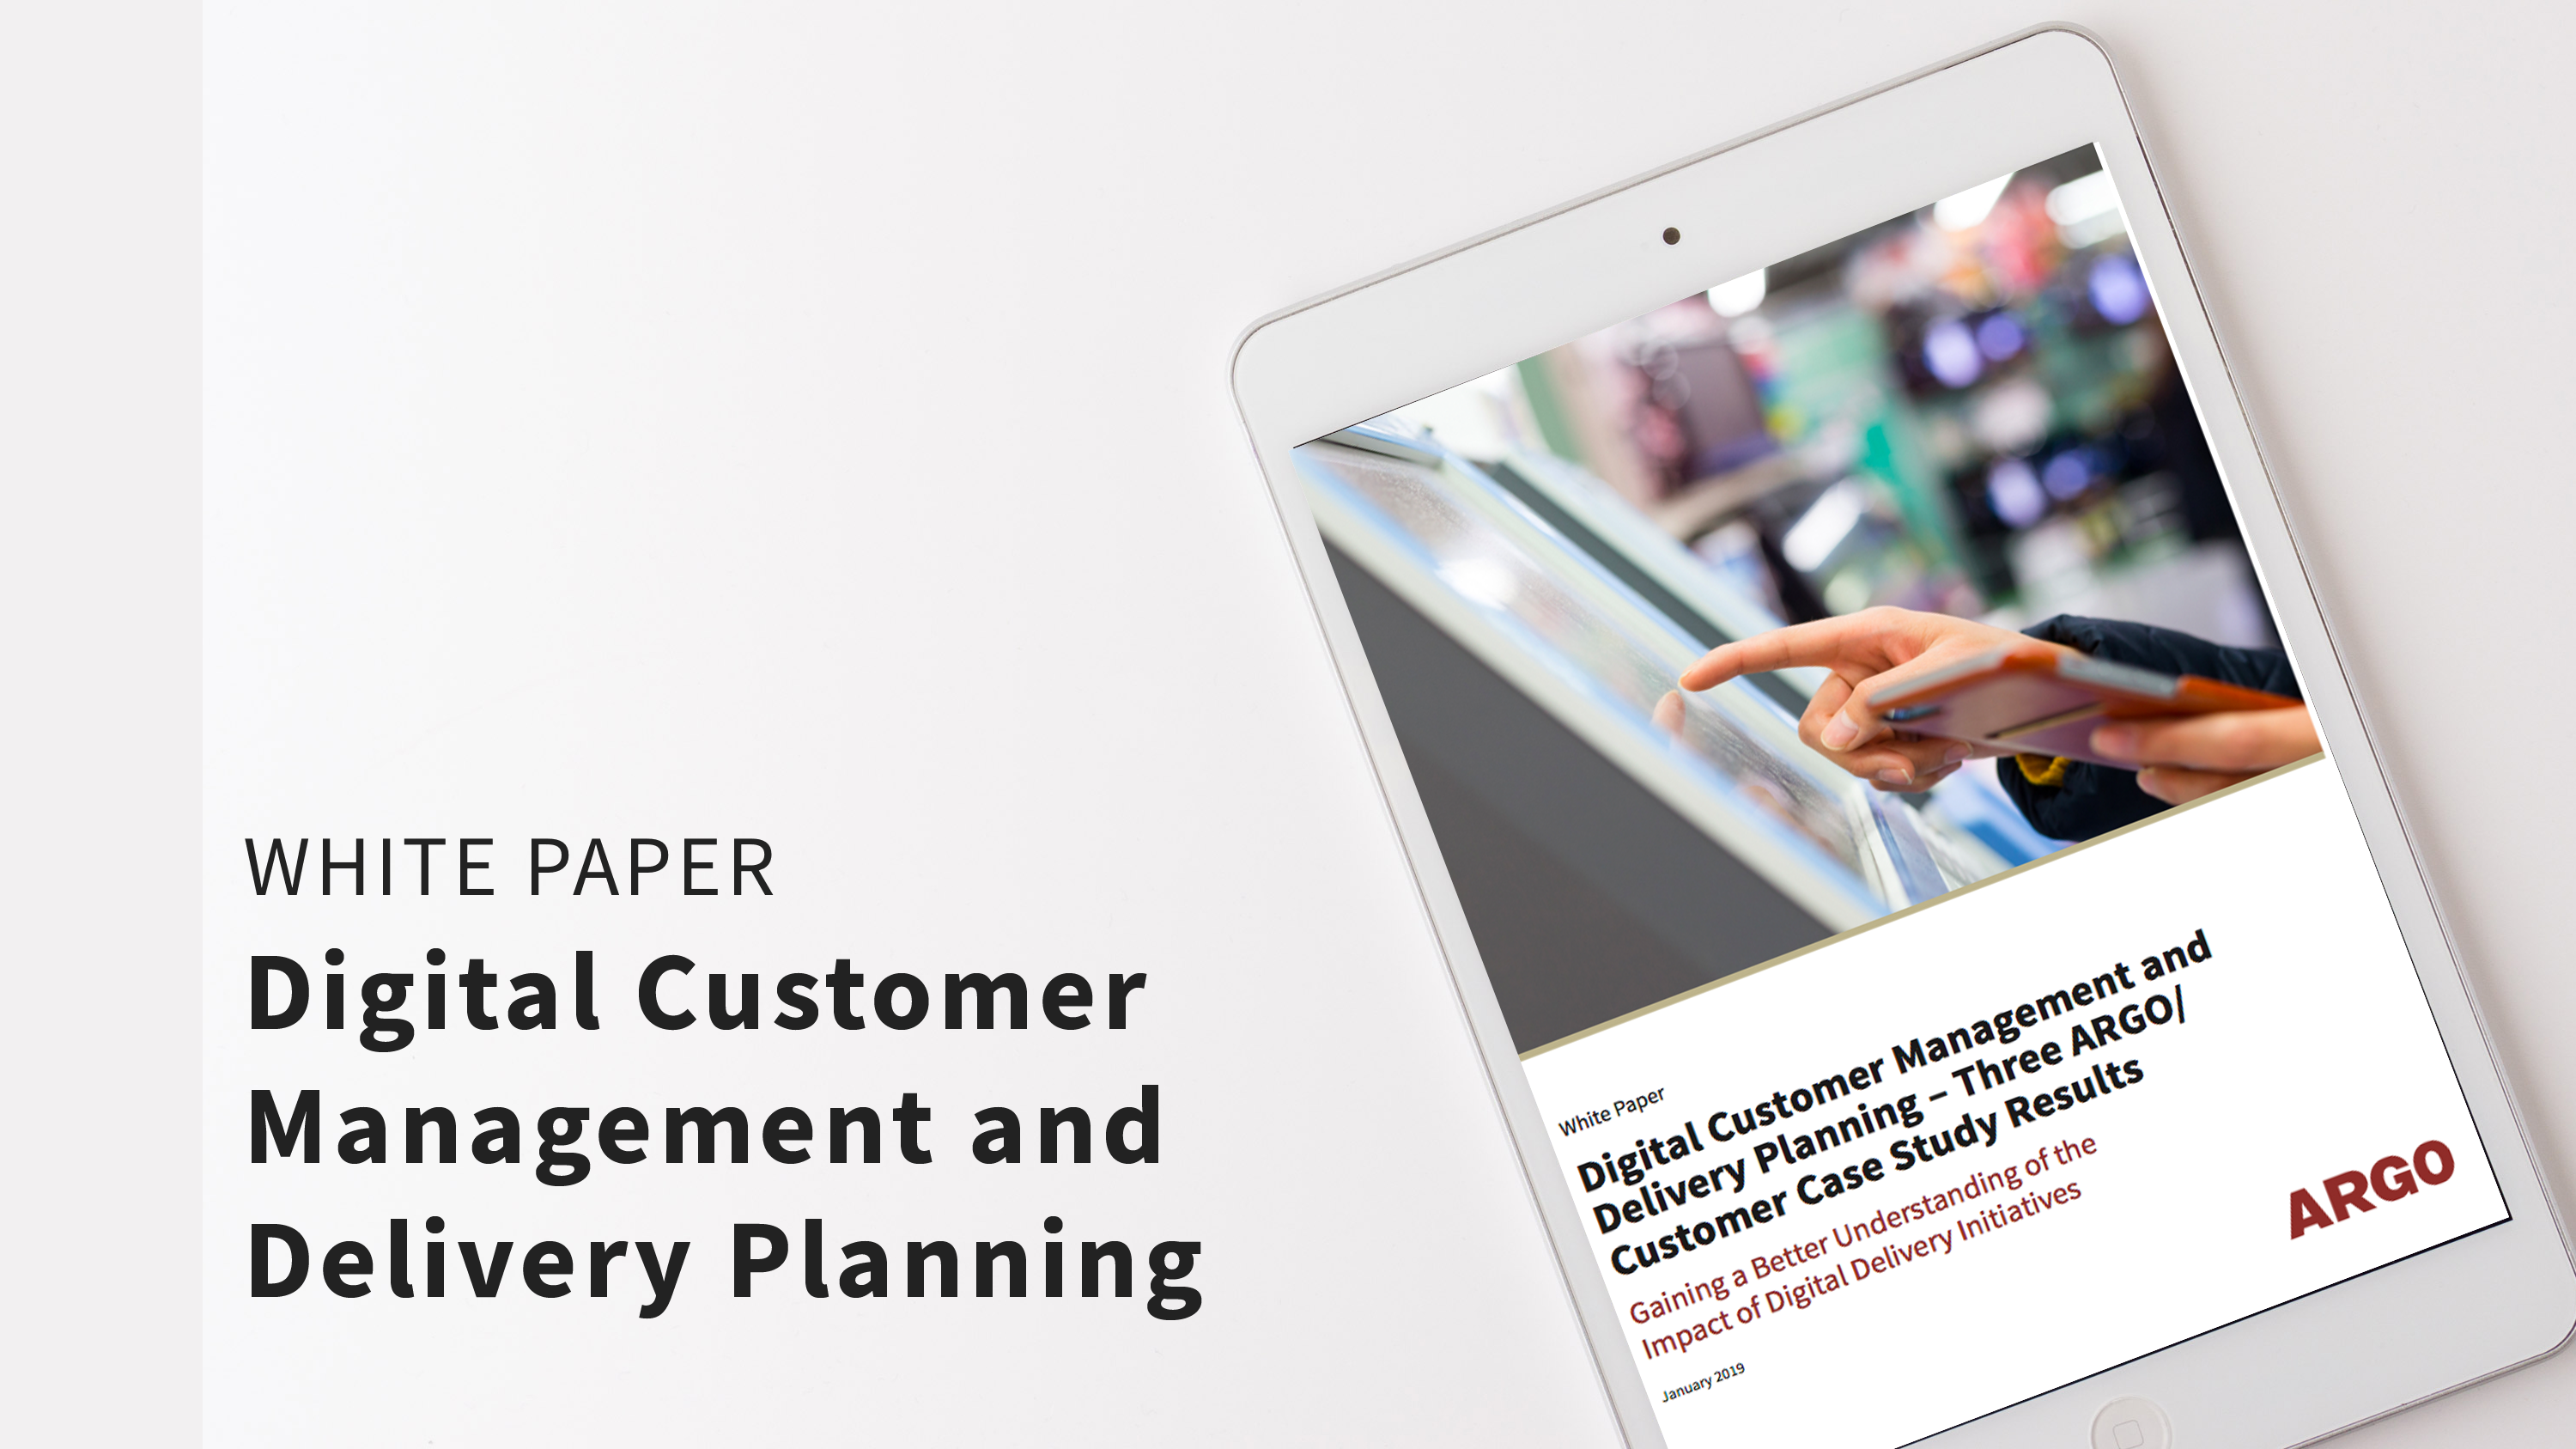 WP Digital Customer Management and Delivery Planning